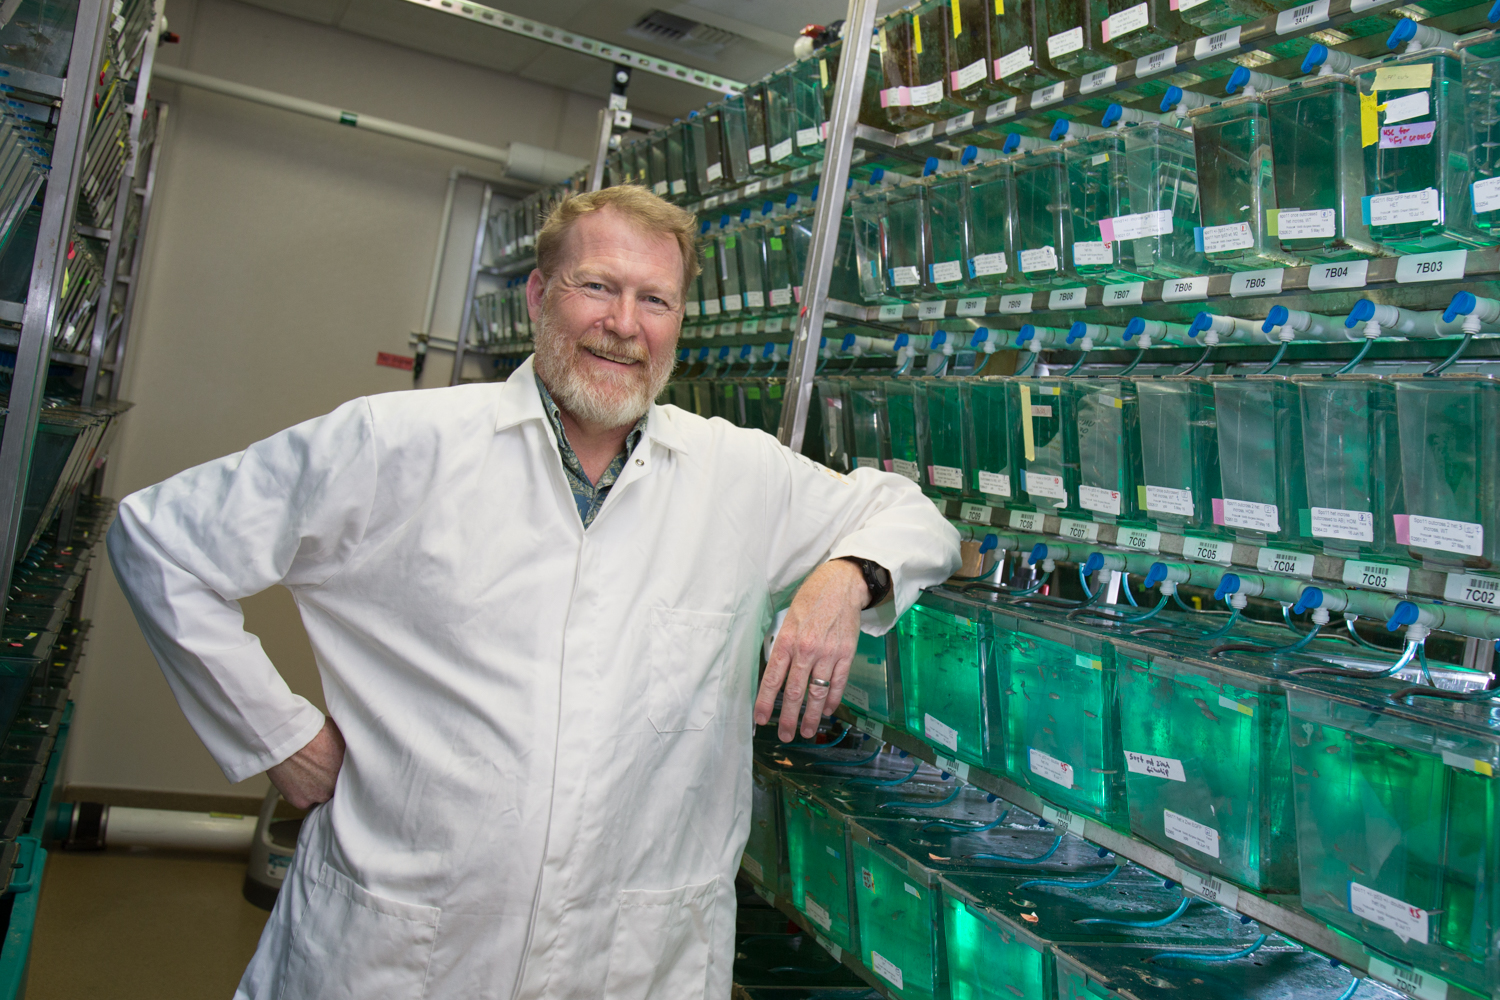 Bruce Draper stands in the zebrafish facility